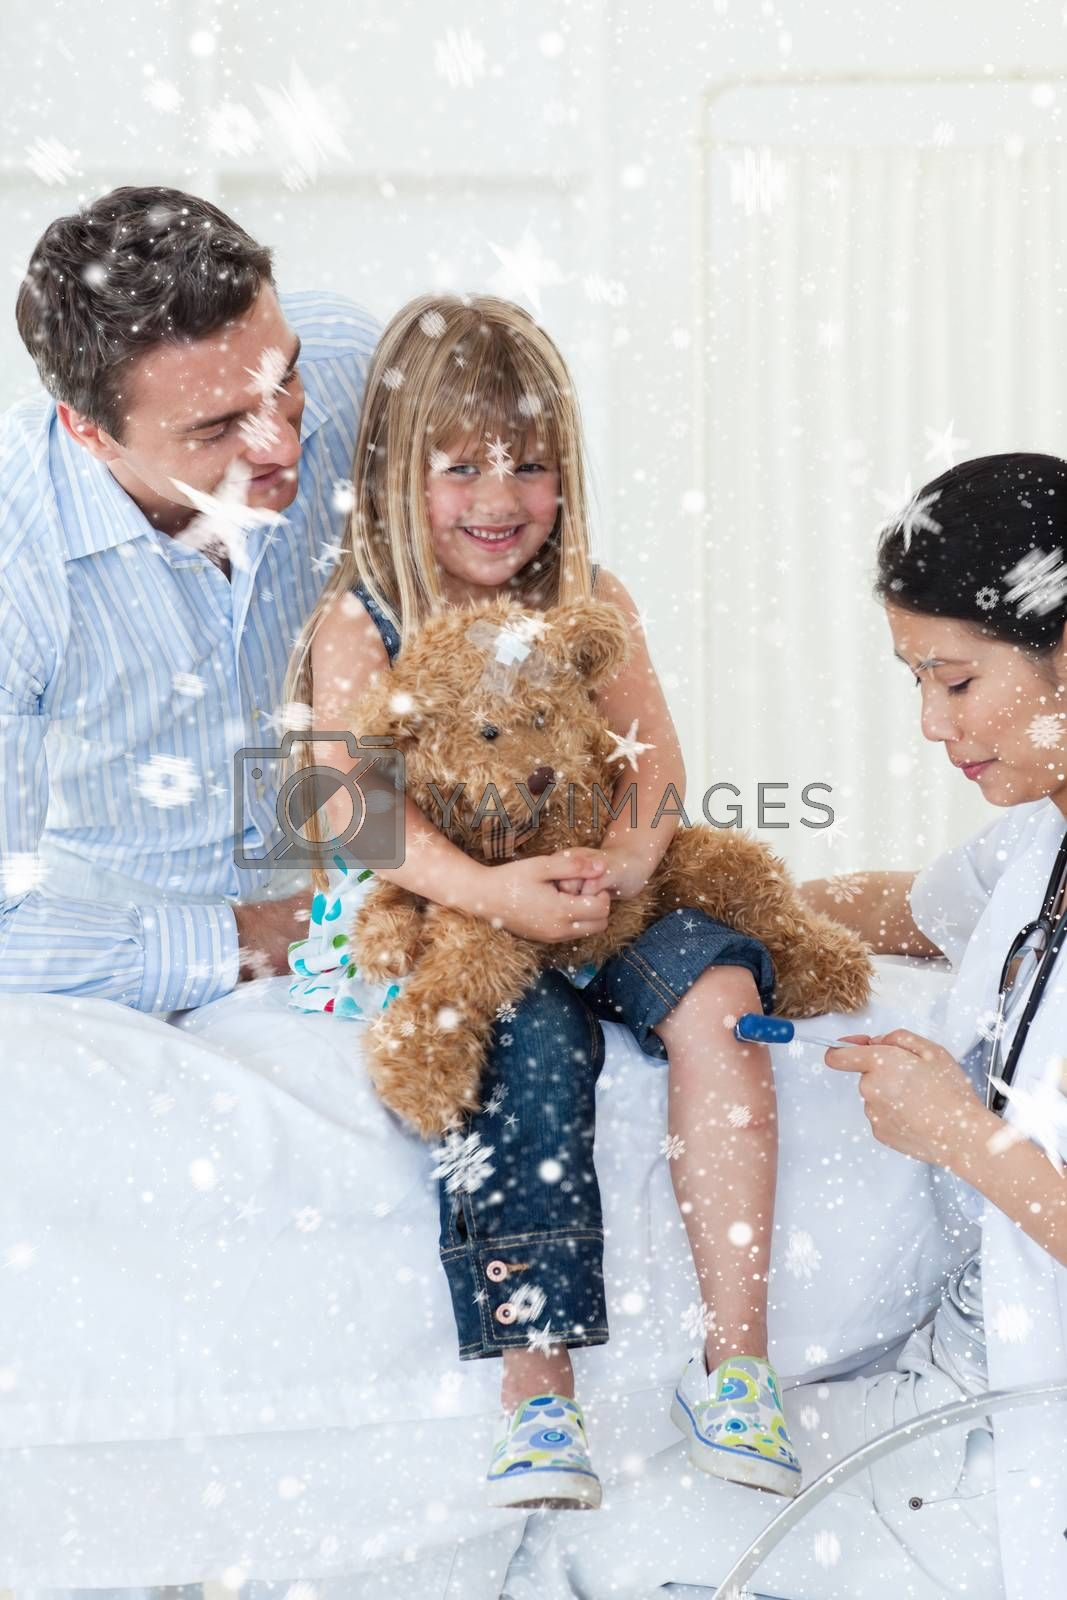 Composite image of Female doctor checking patients reflex with snow falling